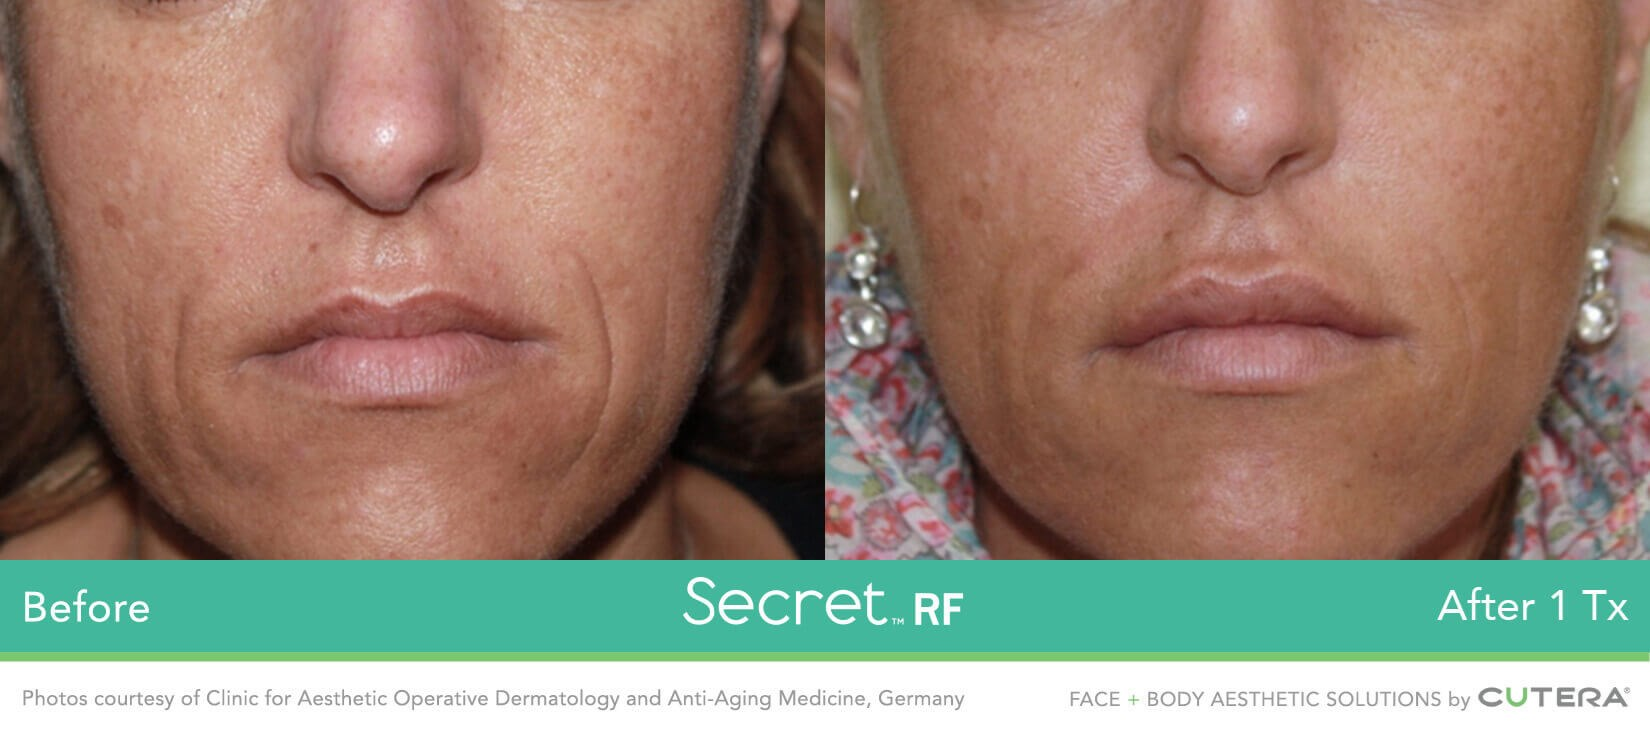 Secret RF Microneedling After 1 treatment